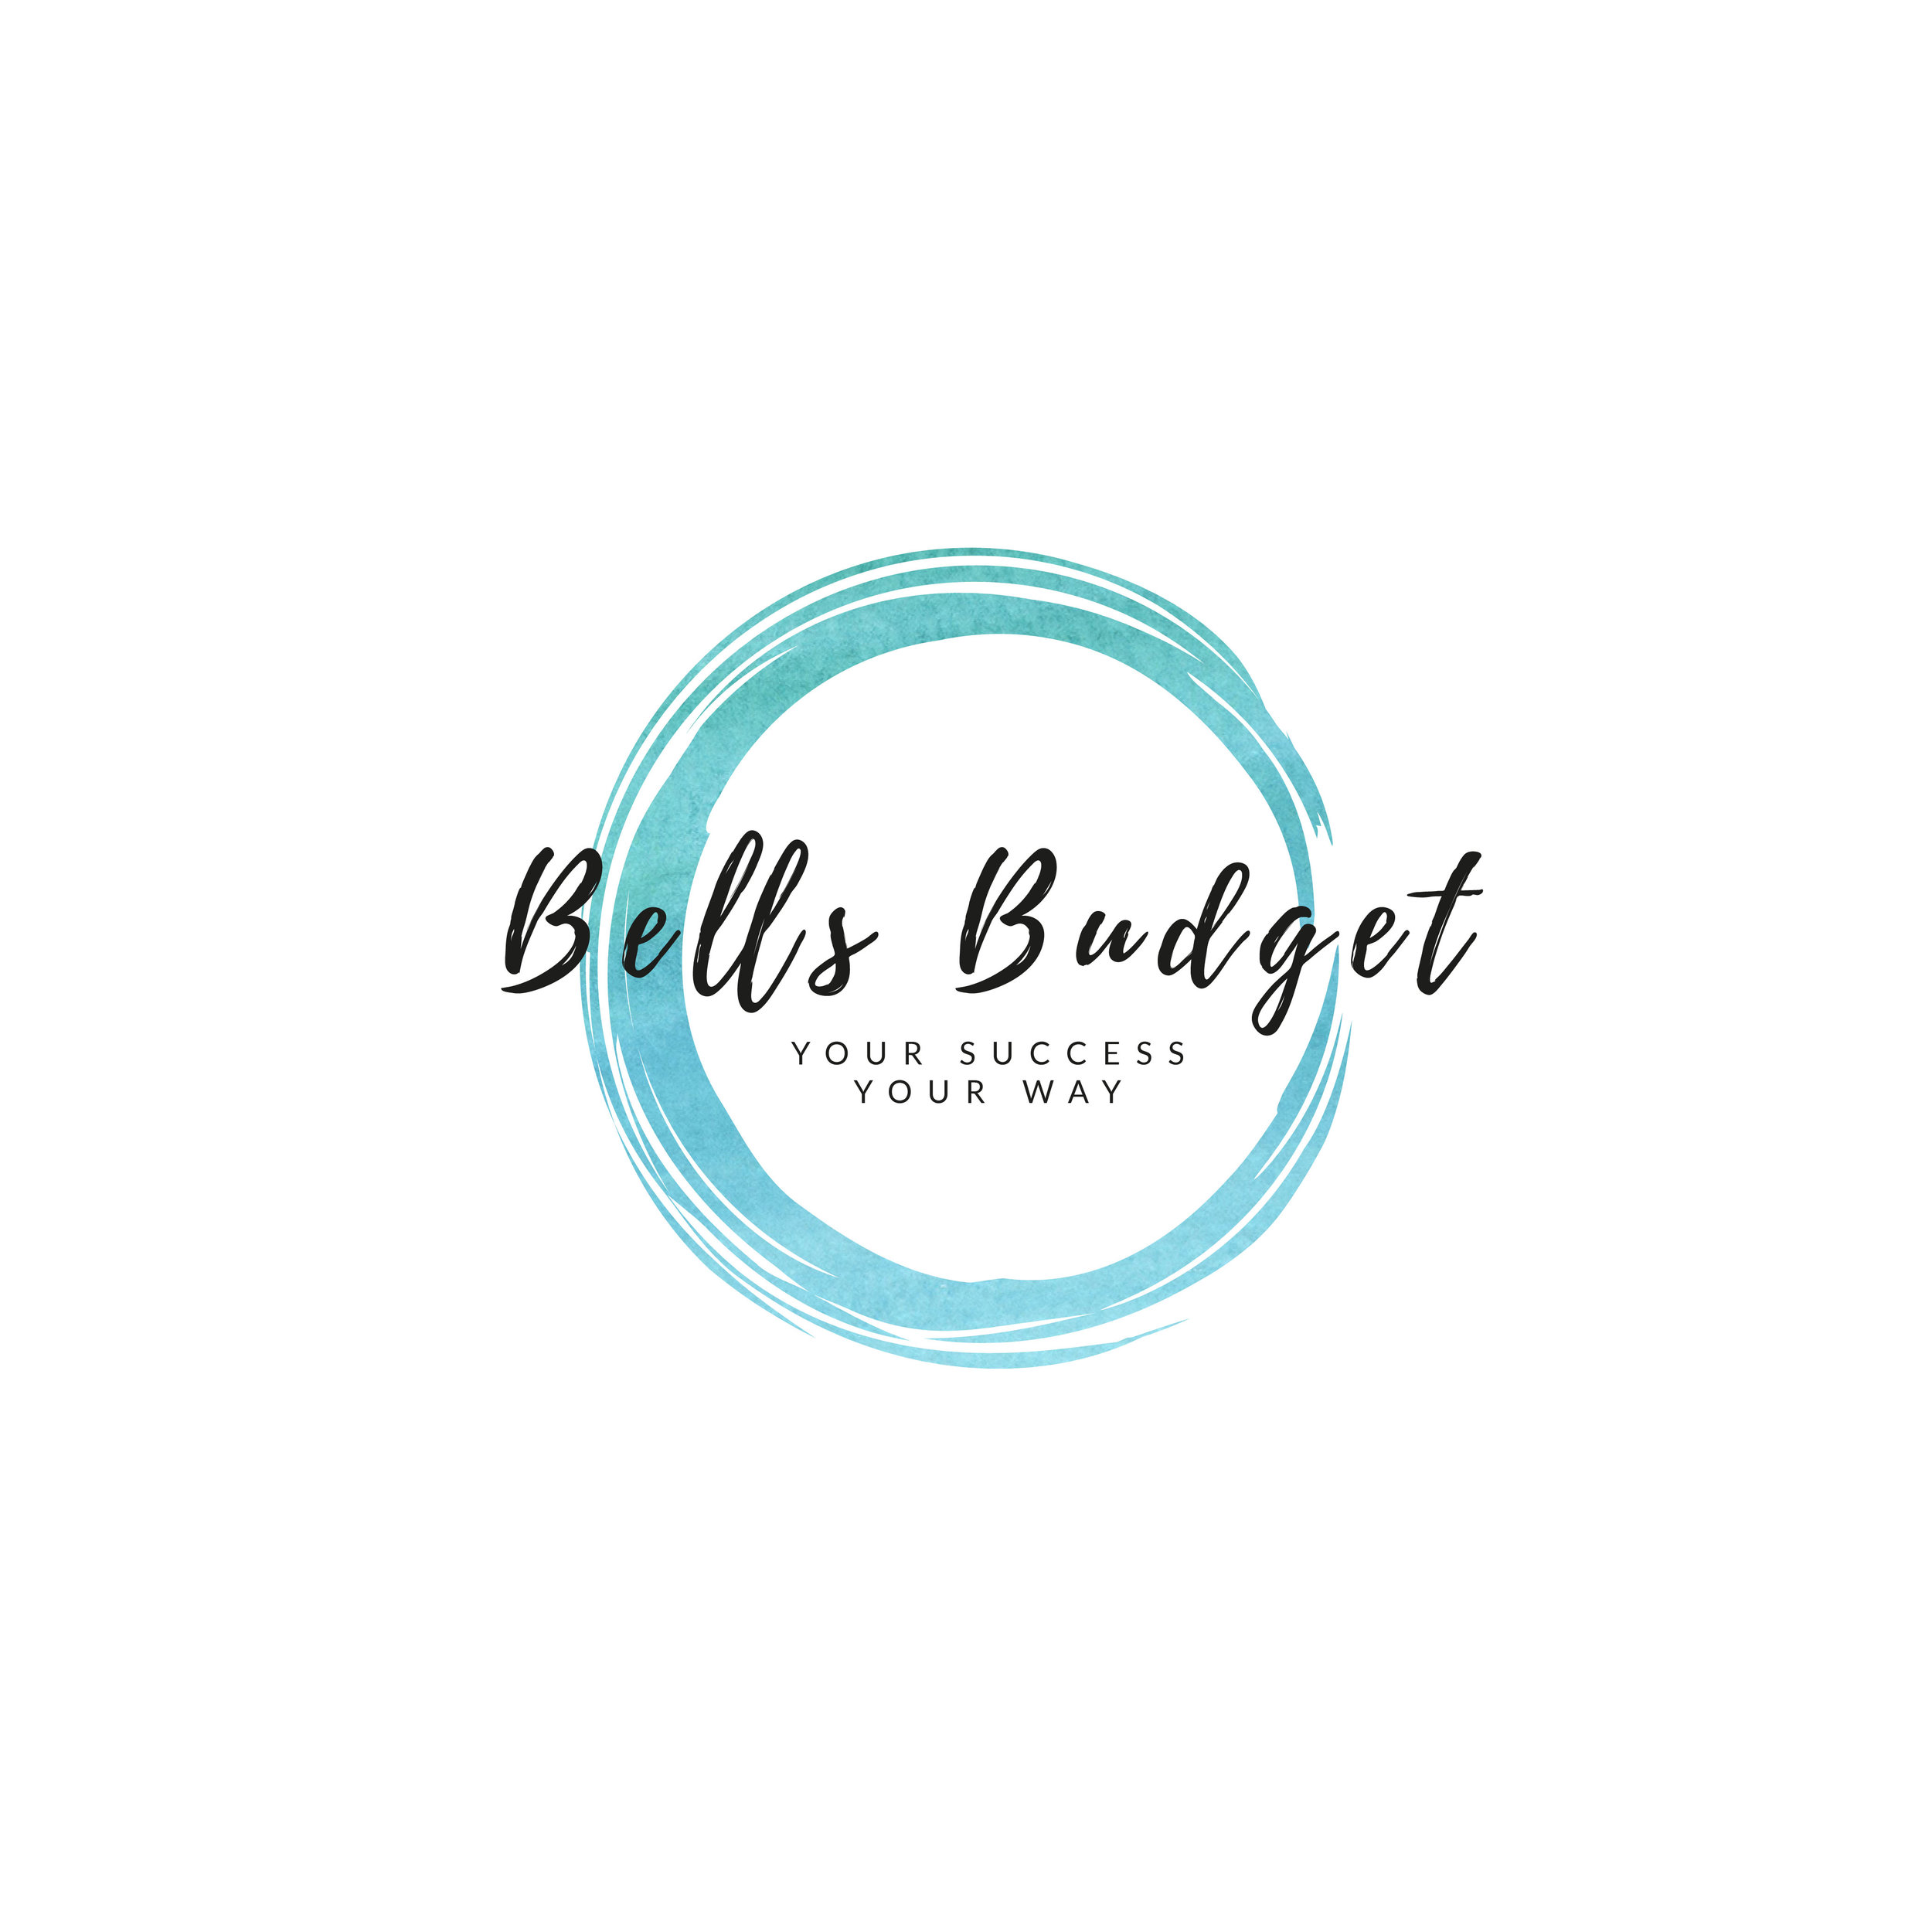 Bells Budget custom logo design | Gorjo Designs